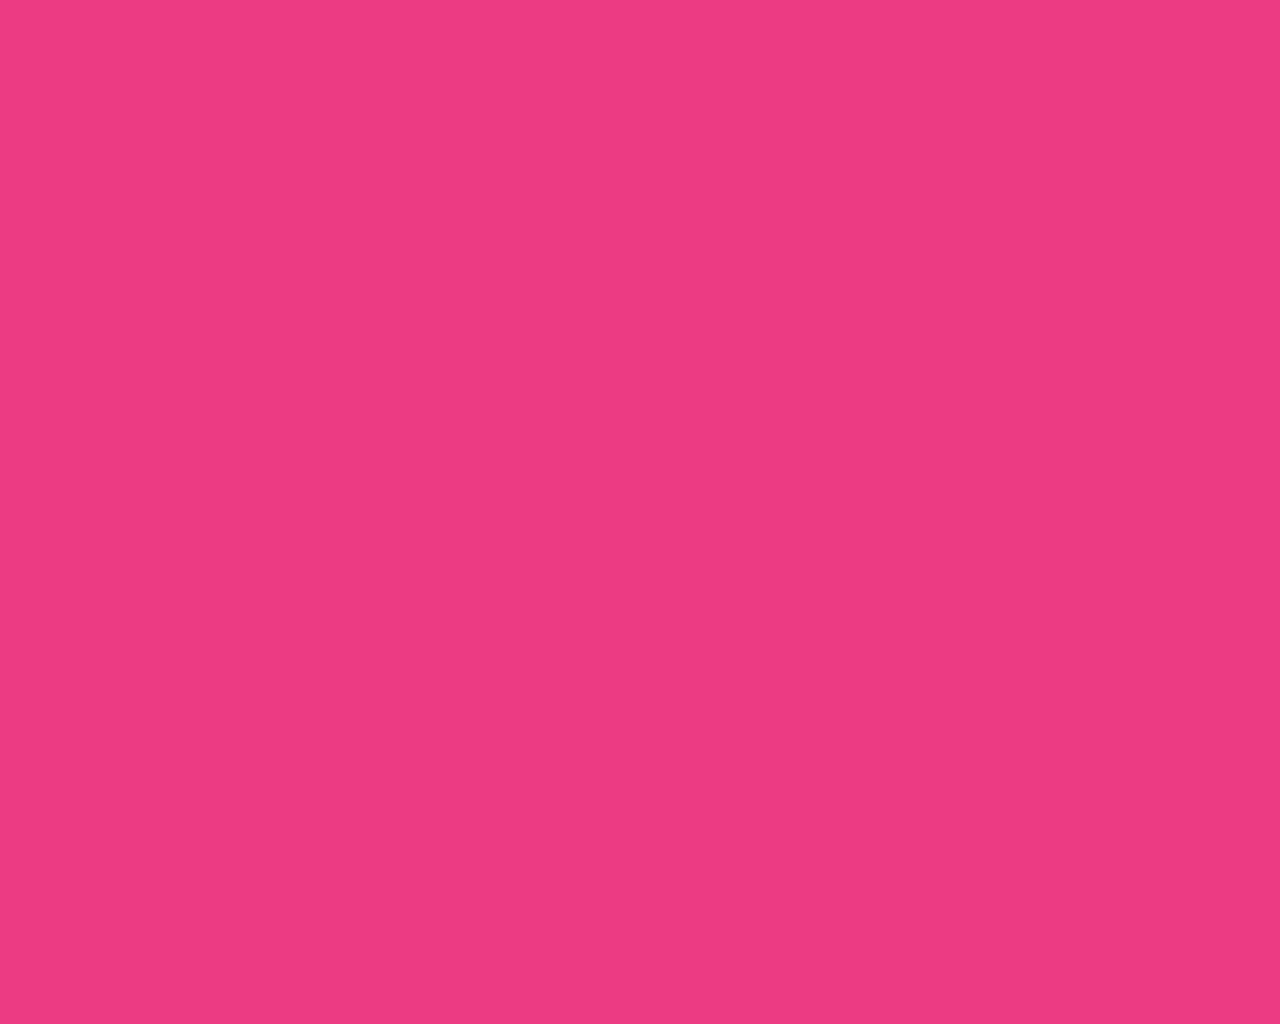 Pink Colour Backgrounds Wallpaper Cave